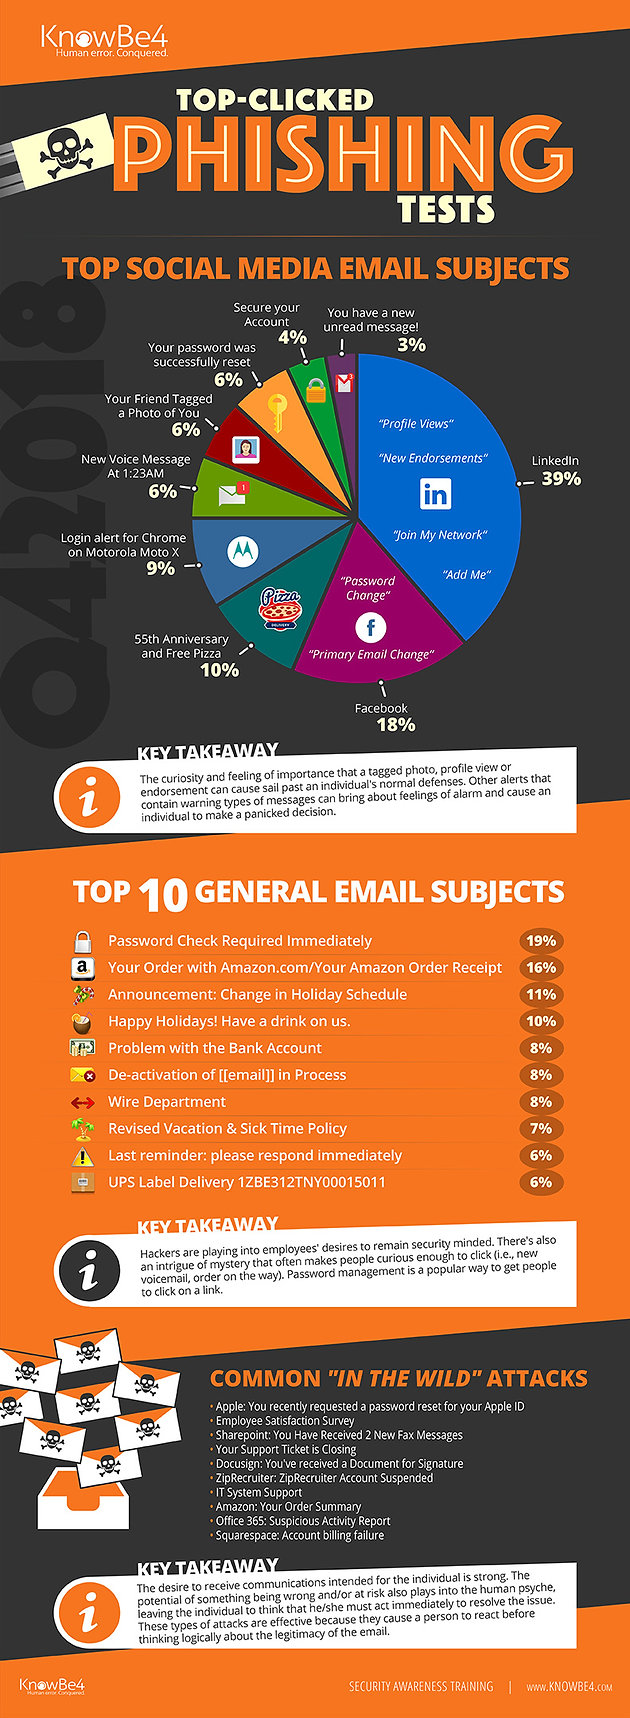 Q4 2018 Top-Clicked Phishing Email Subjects from KnowBe4